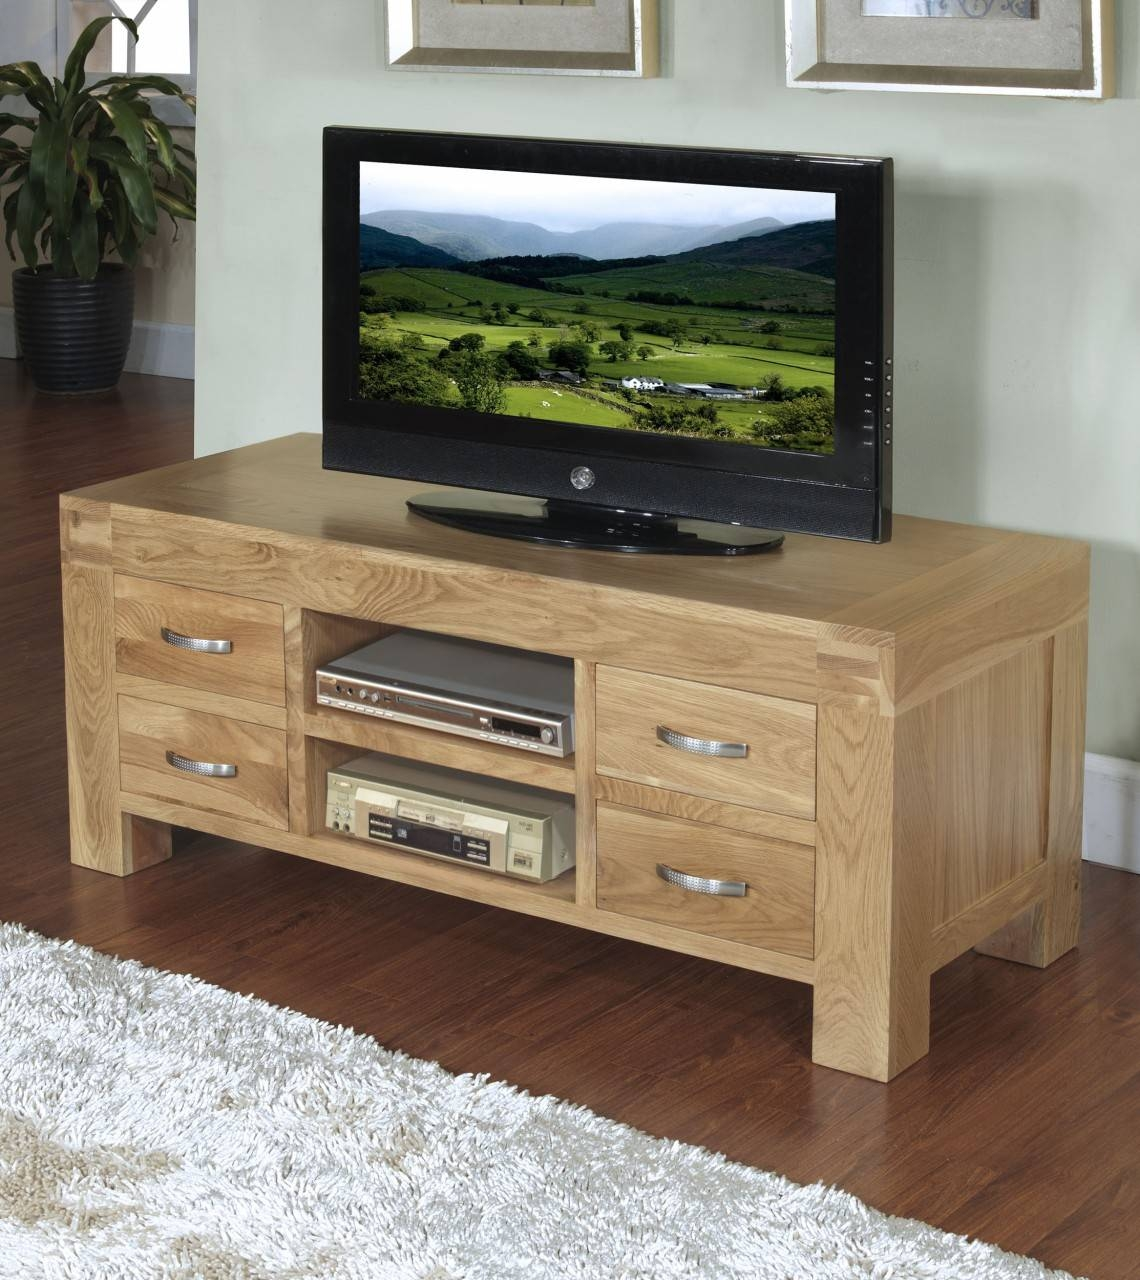 Rivermead Solid Oak Modern Furniture Widescreen Tv Cabinet Stand Inside Solid Oak Tv Cabinets (View 11 of 15)